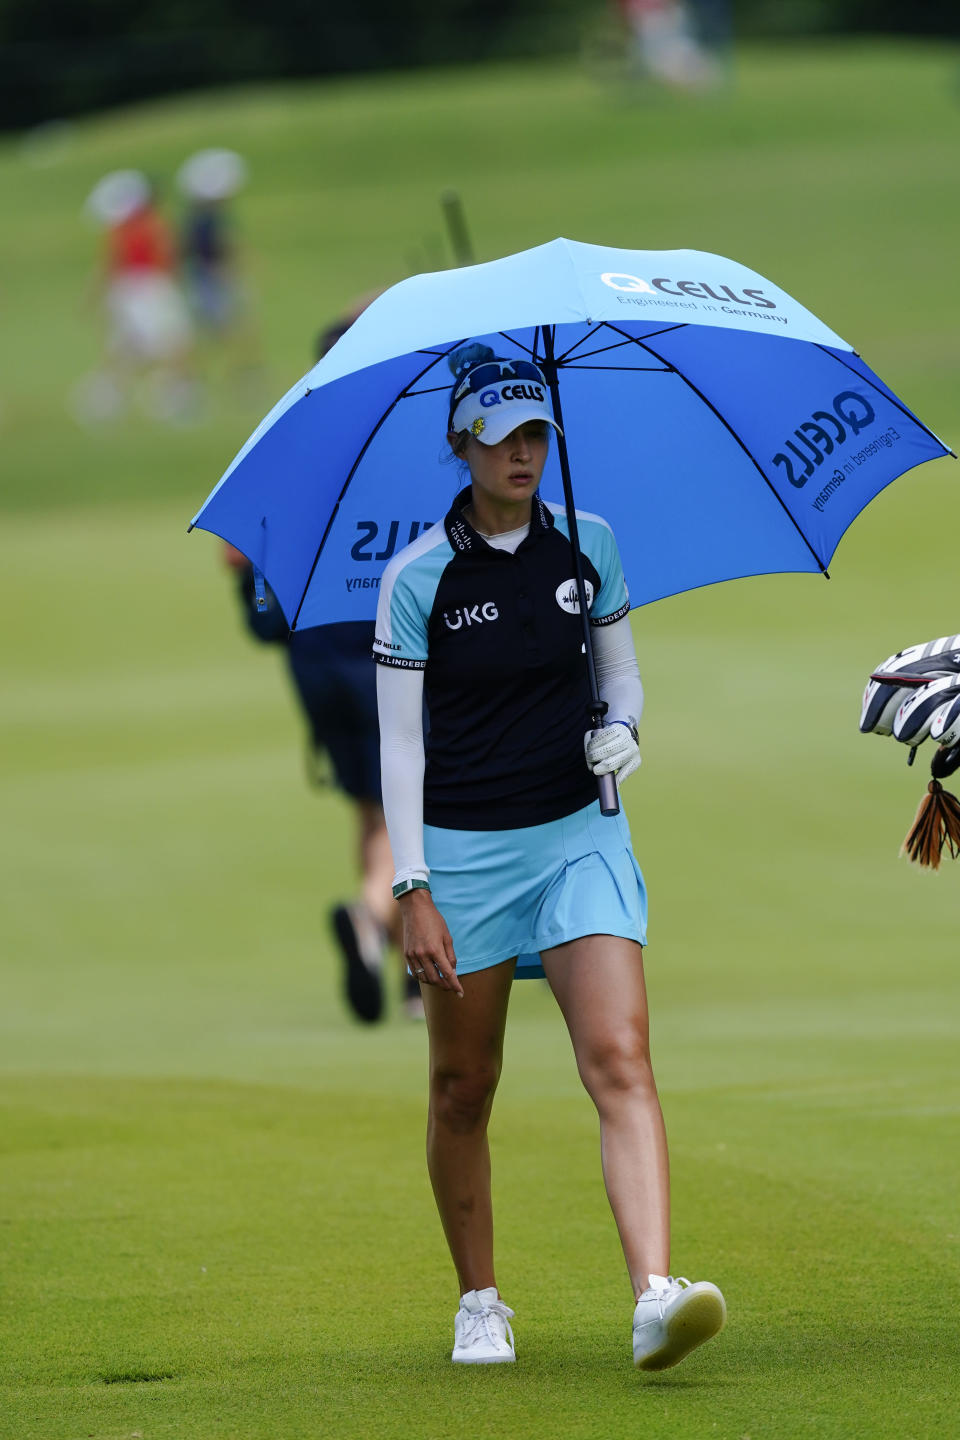 Nelly Korda of the U.S. paces off the distance on the fairway of the second hole, during the final round of play in the KPMG Women's PGA Championship golf tournament Sunday, June 27, 2021, in Johns Creek, Ga. (AP Photo/John Bazemore)